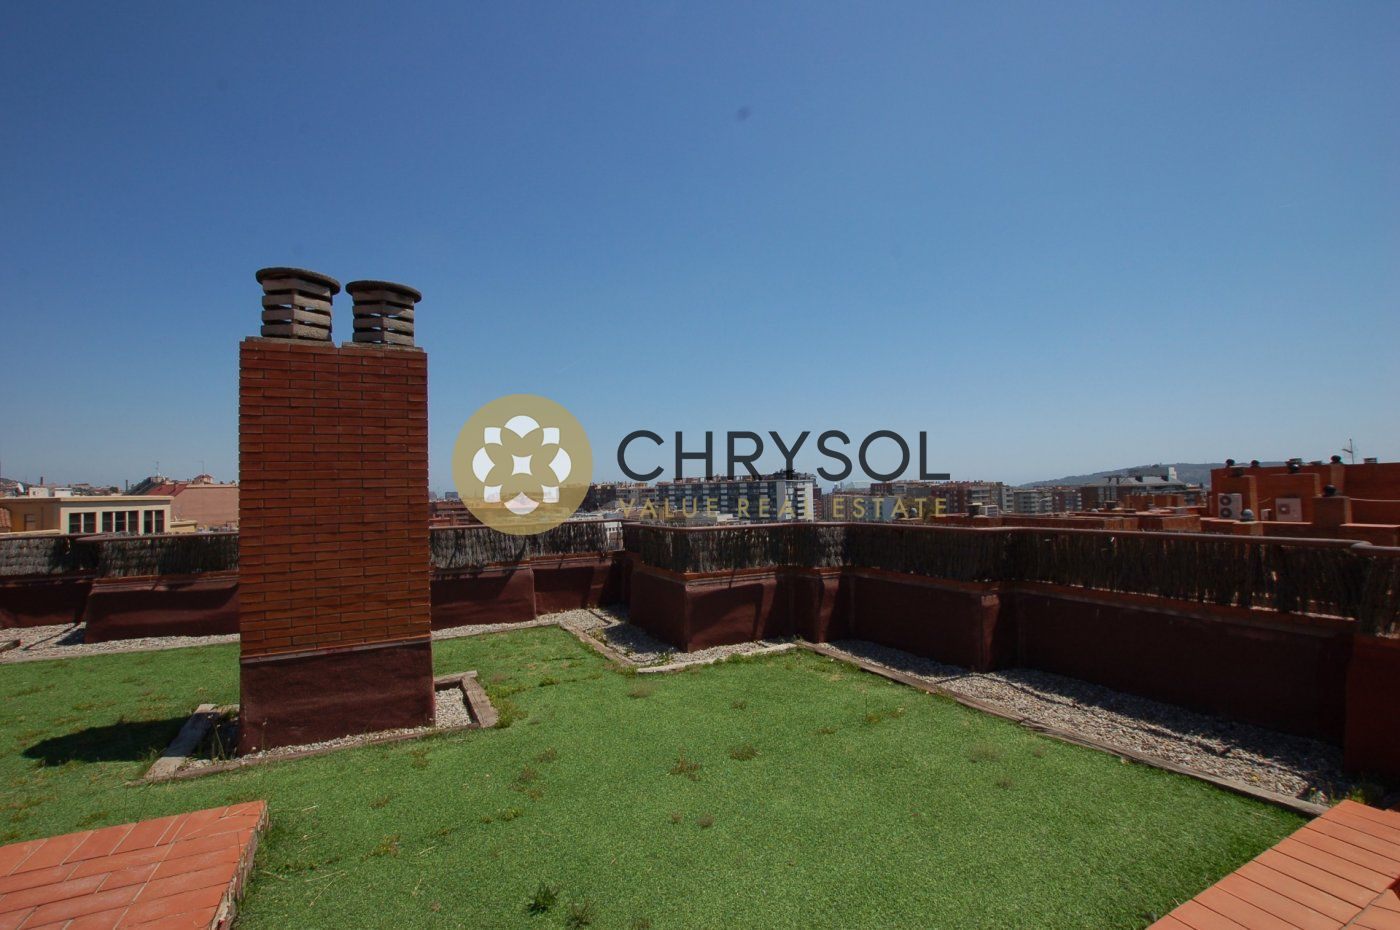 Fotogalería - 51 - Chrysol Value